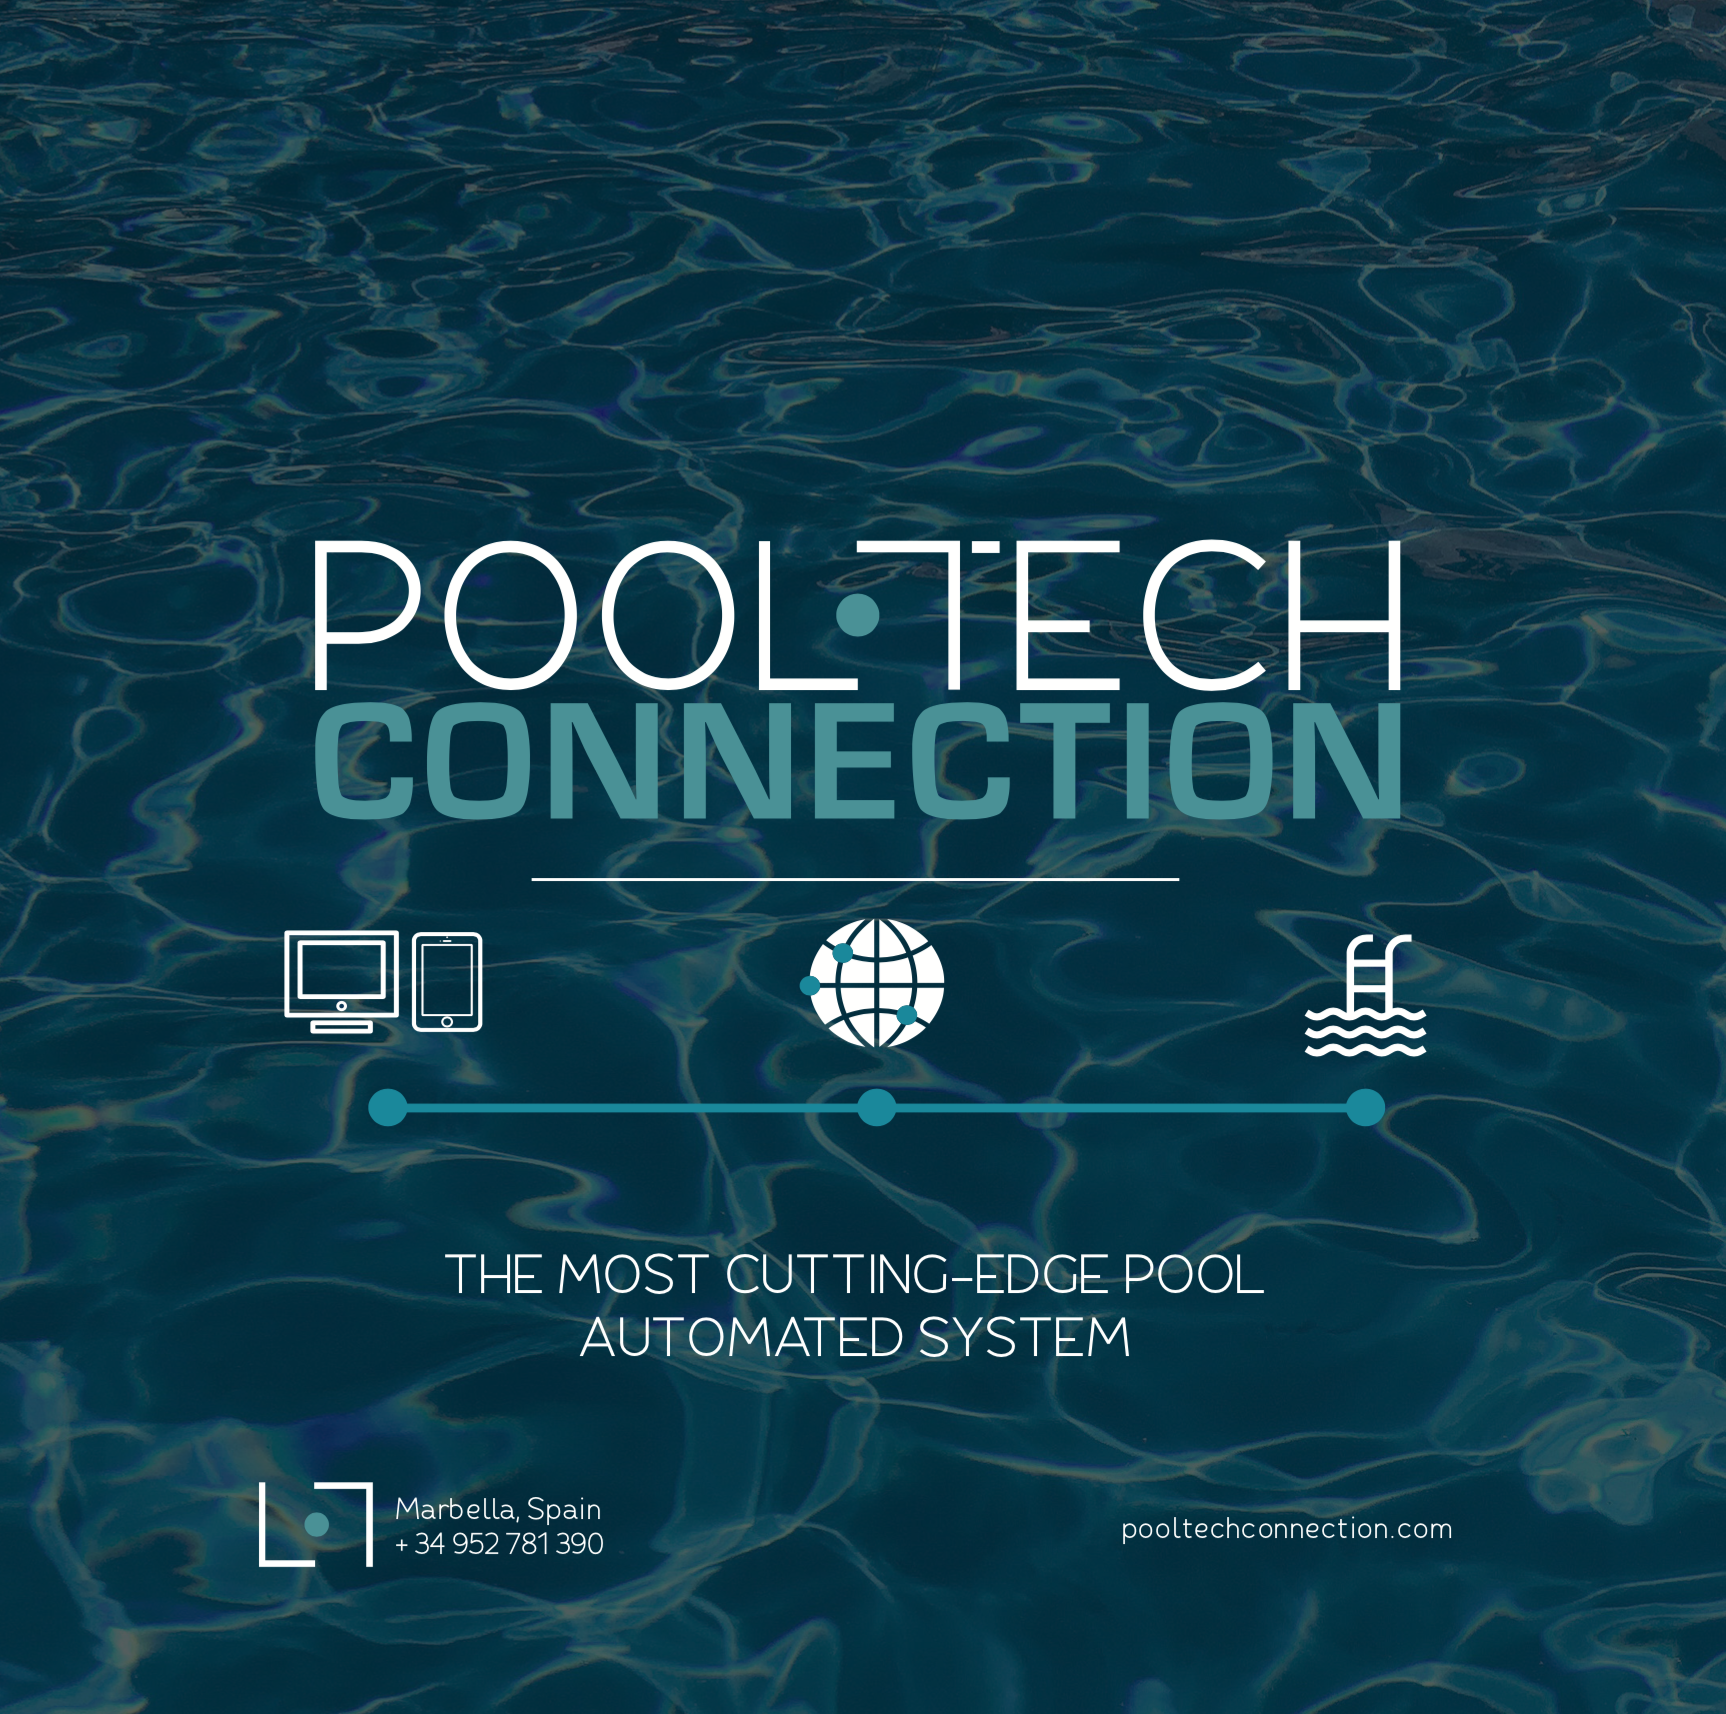 Pooltech Connection